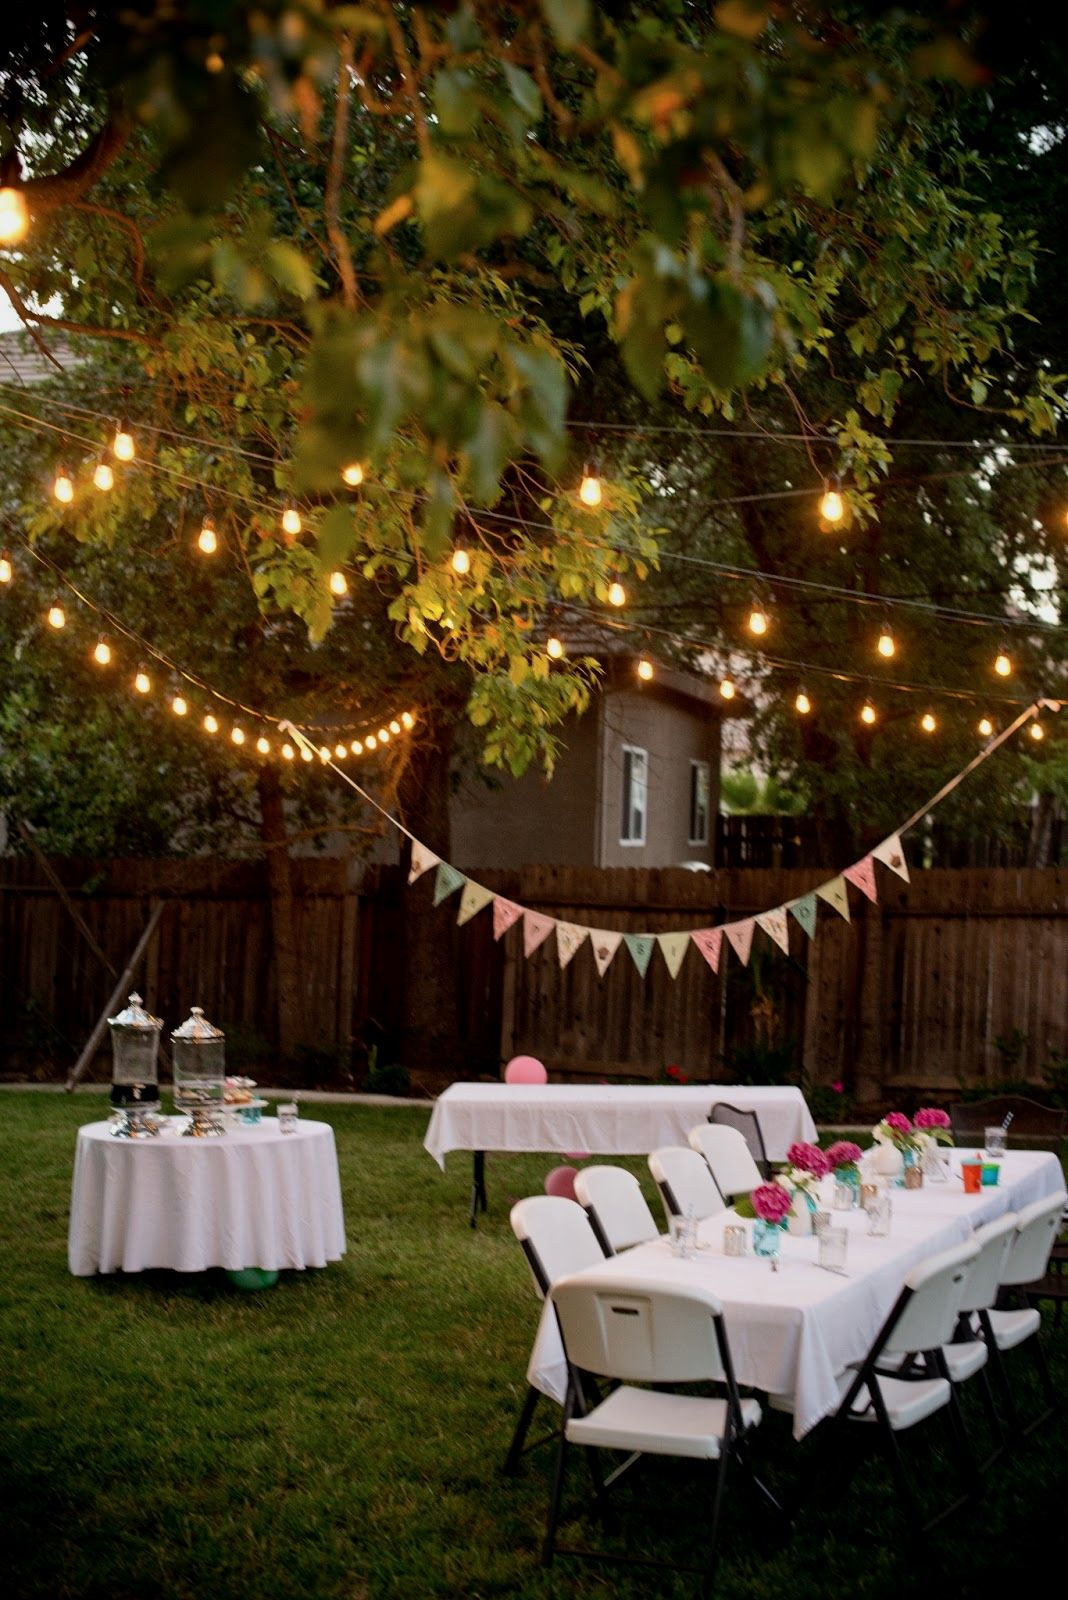 Awesome Diy Patio Lighting Projects You Can Do For Your Backyard Spaces Also Outdoor Decoration Ideas